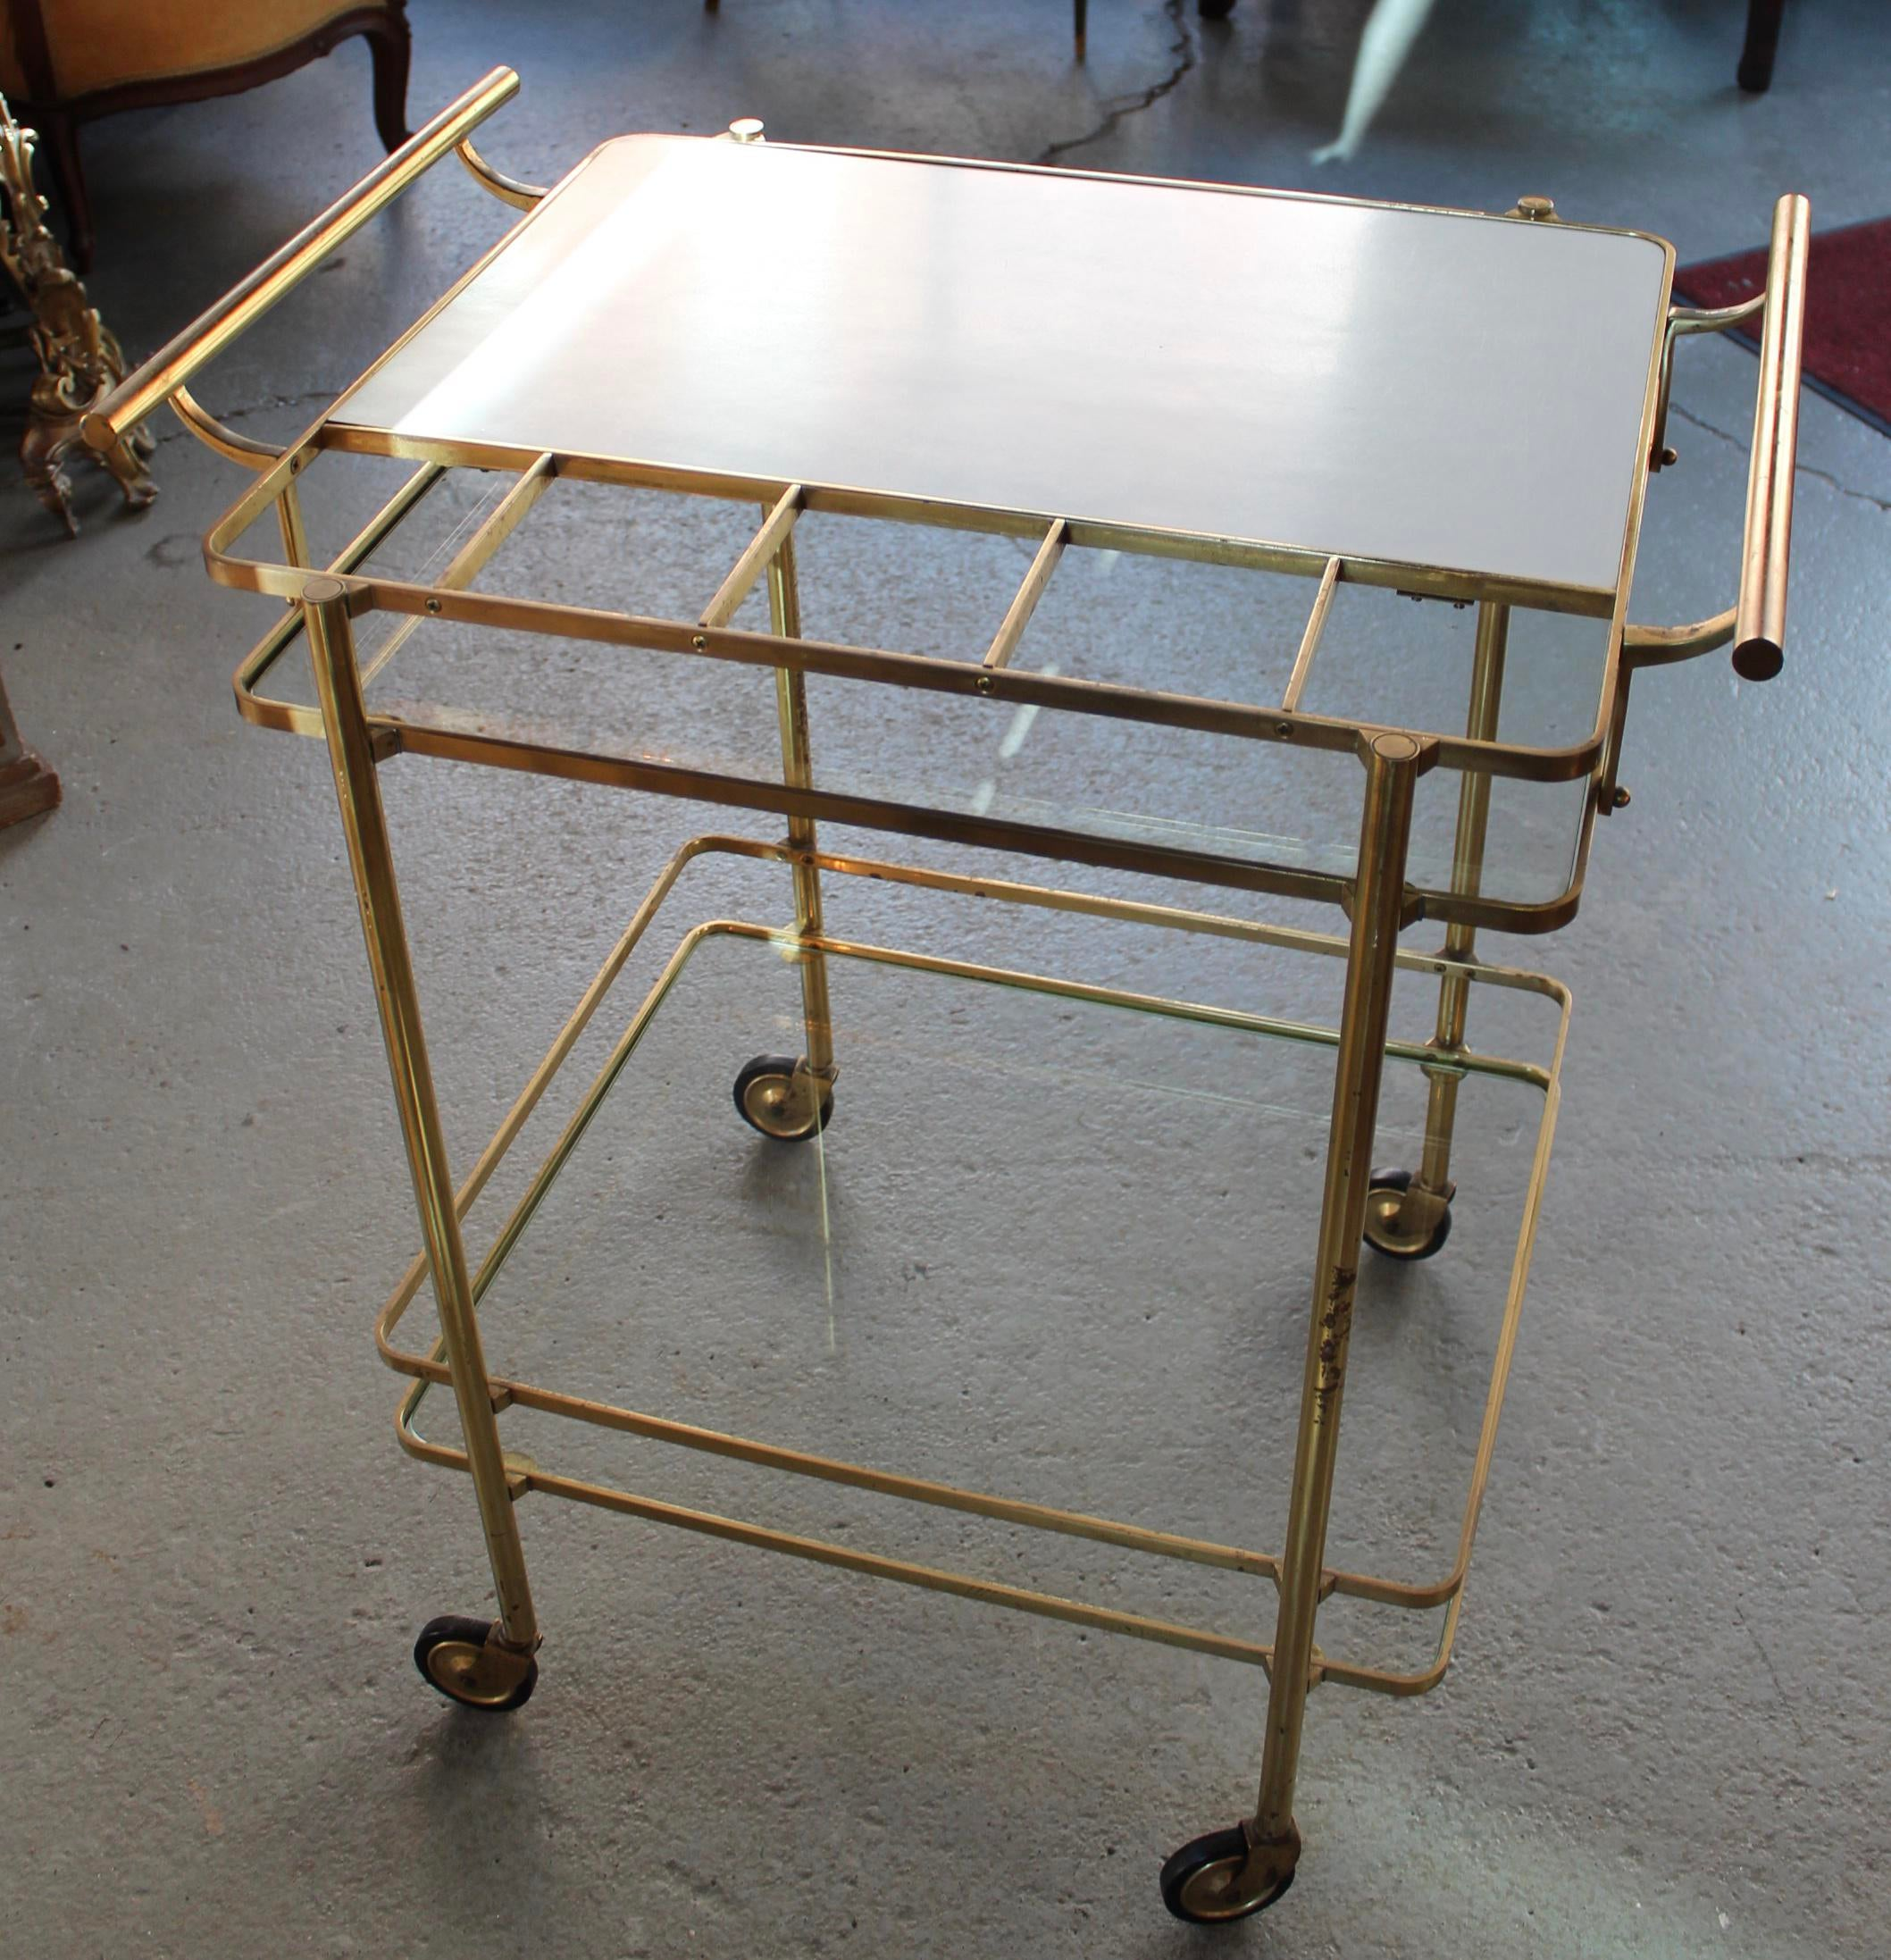 Fabulous Vintage Midcentury Brass And Glass Bar Cart Image Of